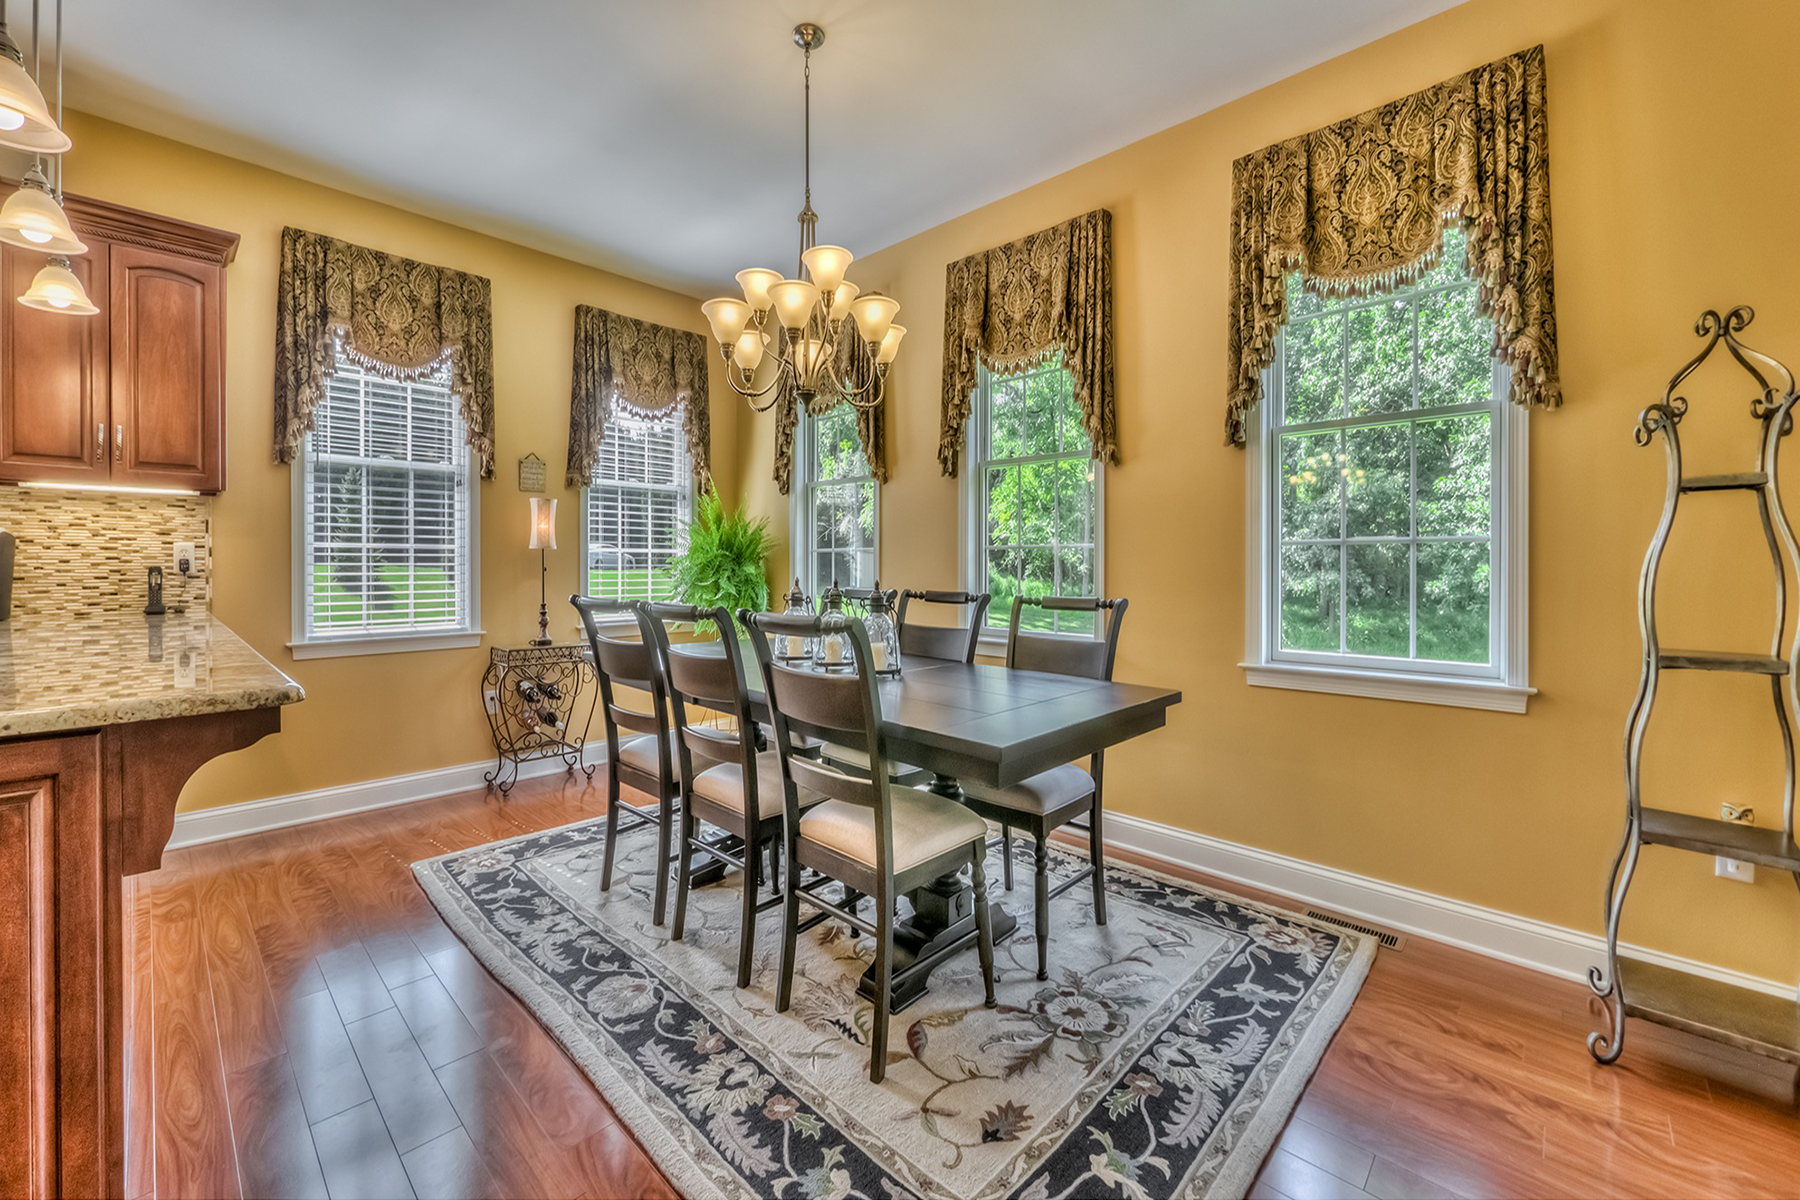 Additional photo for property listing at 140 Acorn Road 140 Acorn Road Spring Grove, Pennsylvania 17362 Estados Unidos